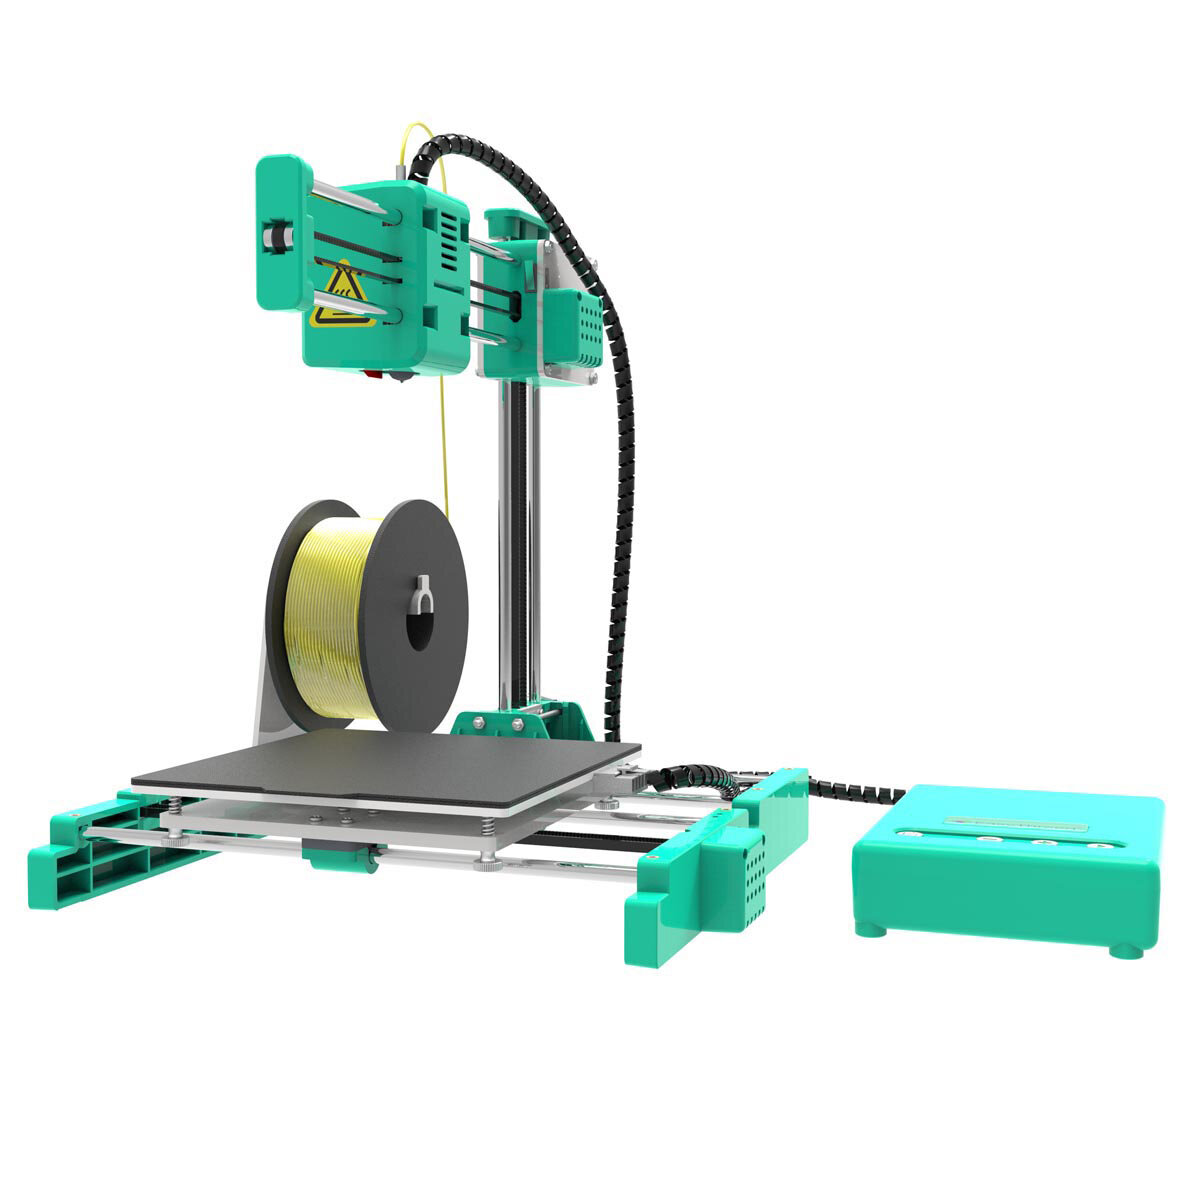 Wholesale Easythreed X3 Desktop MIni 3D Printer 150*150*150mm Printing Size with Hotbed